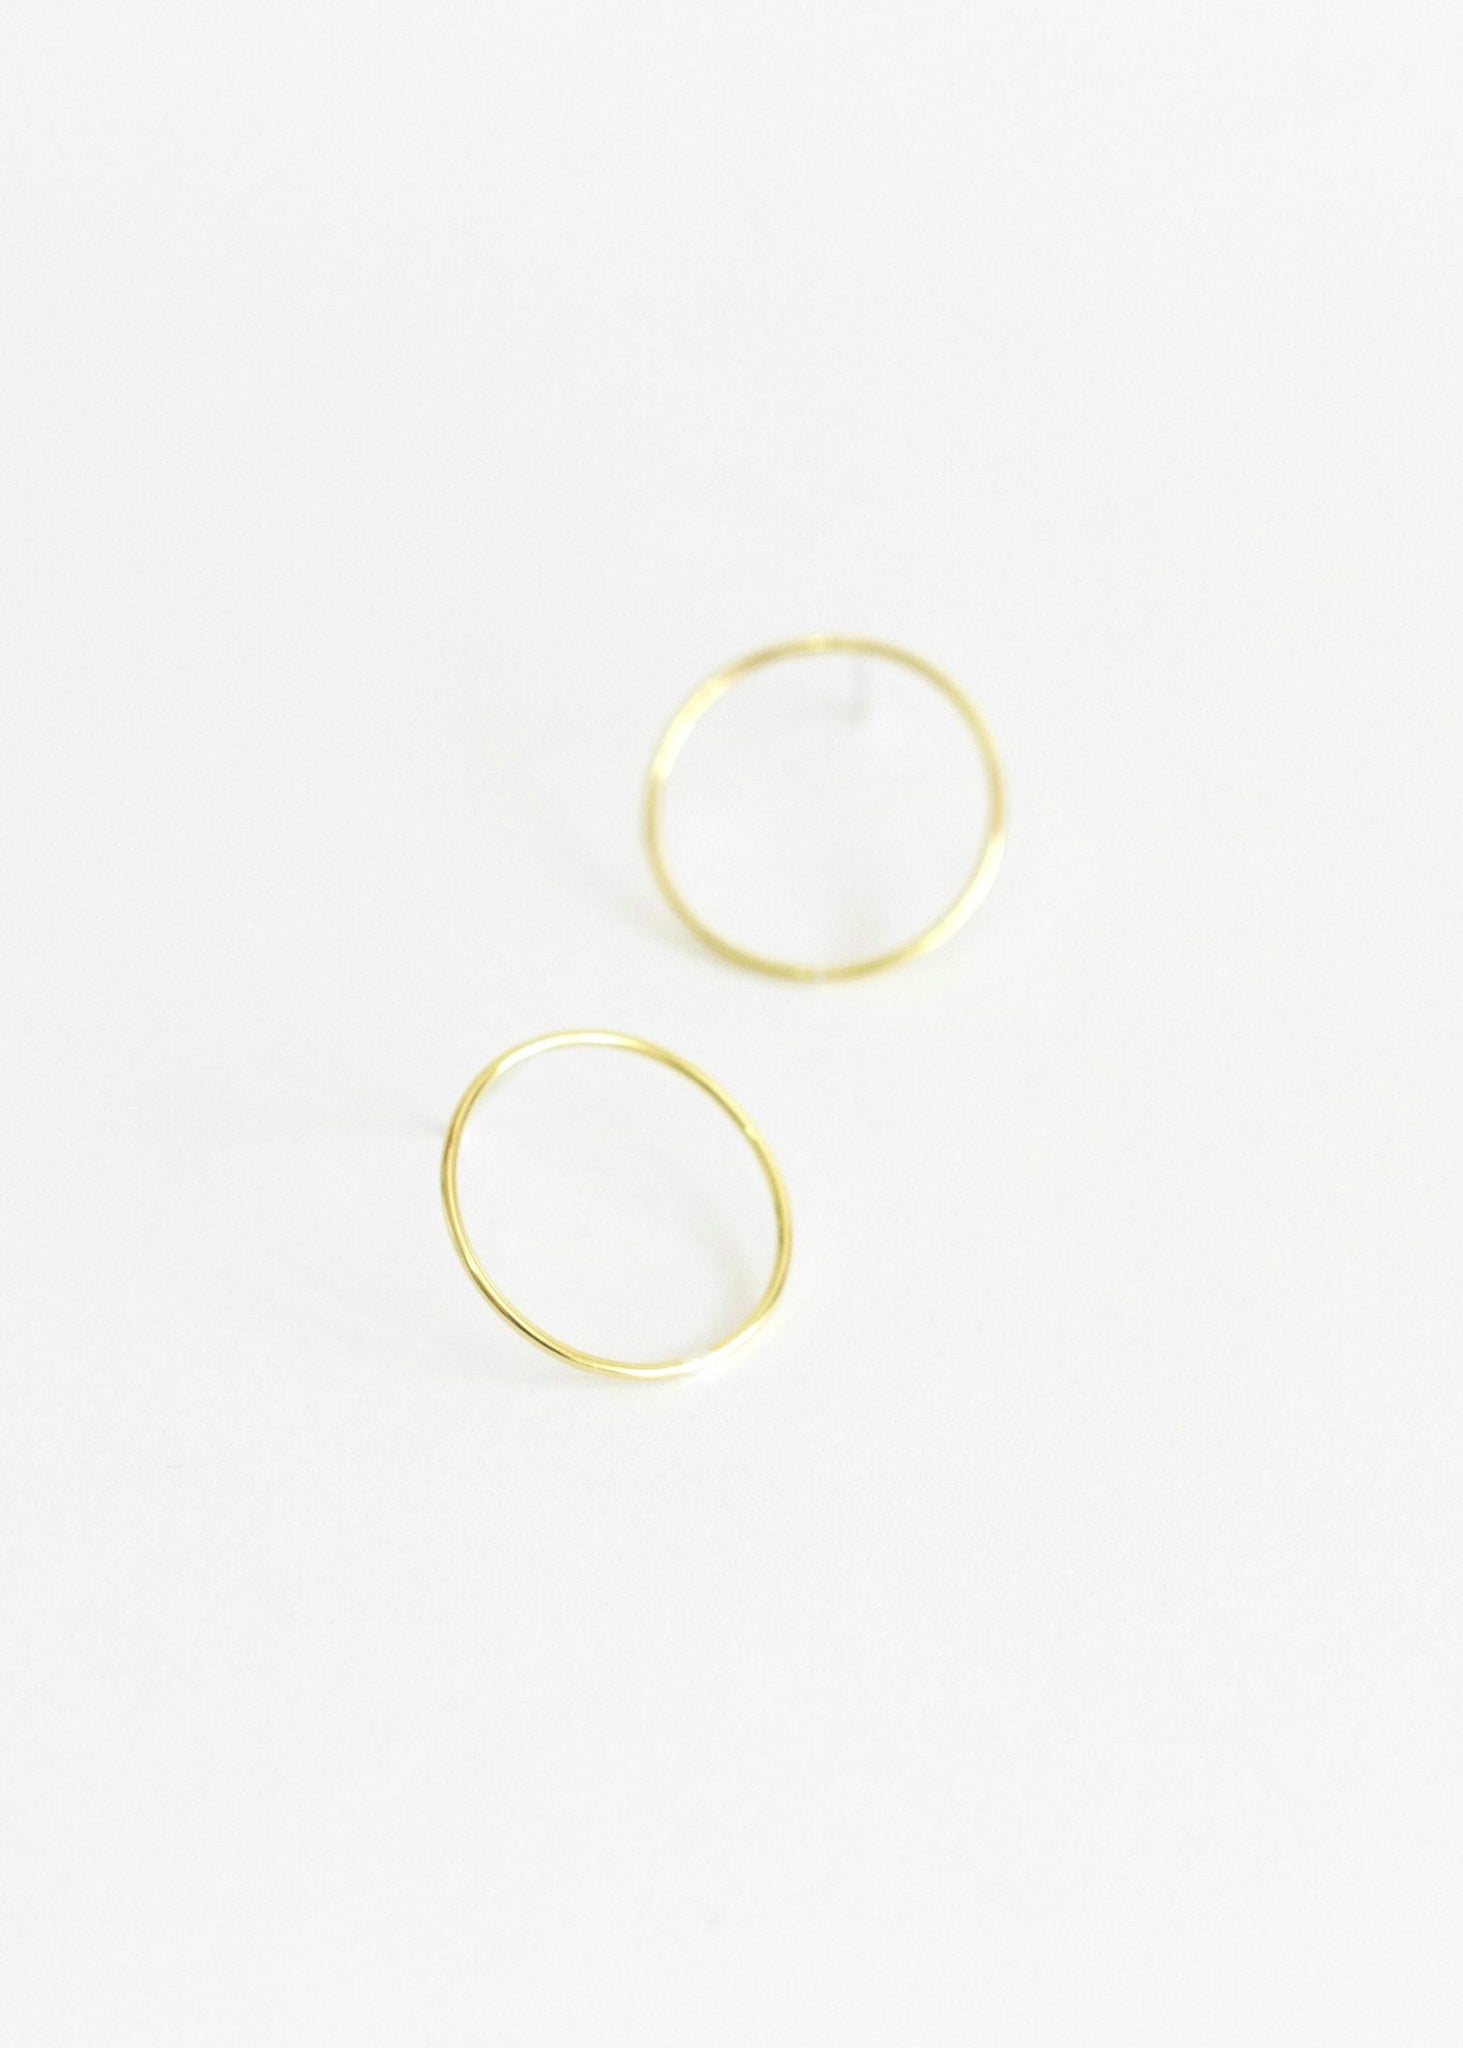 No. 7 Earring | Two Hills